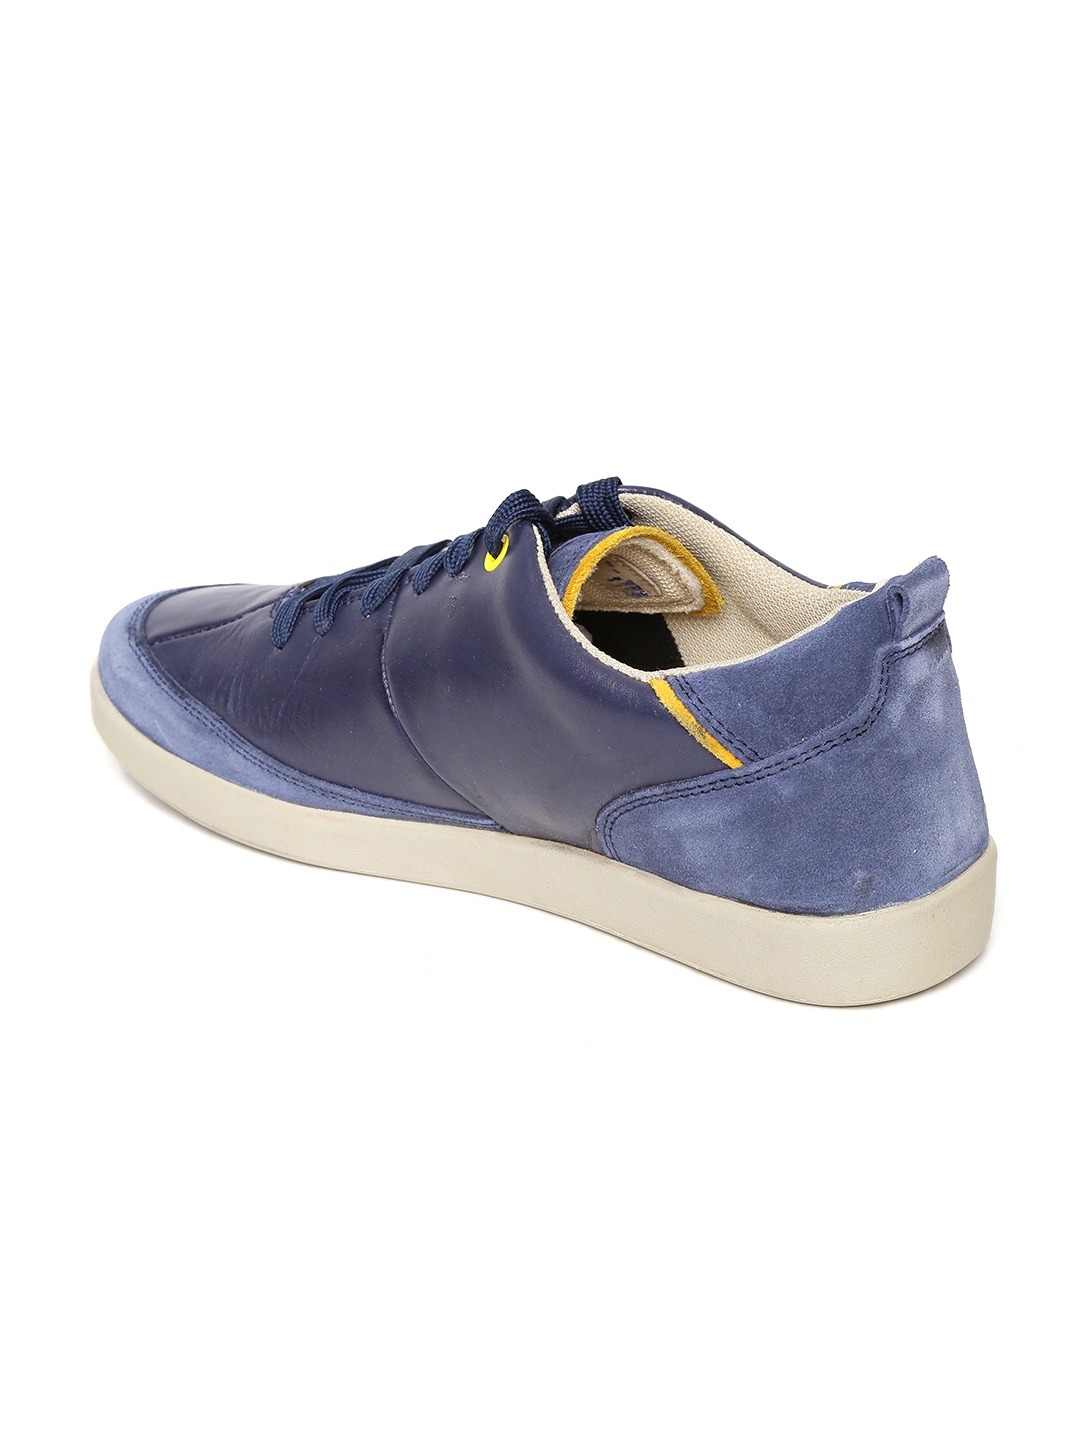 myntra woodland navy leather casual shoes 862790 buy